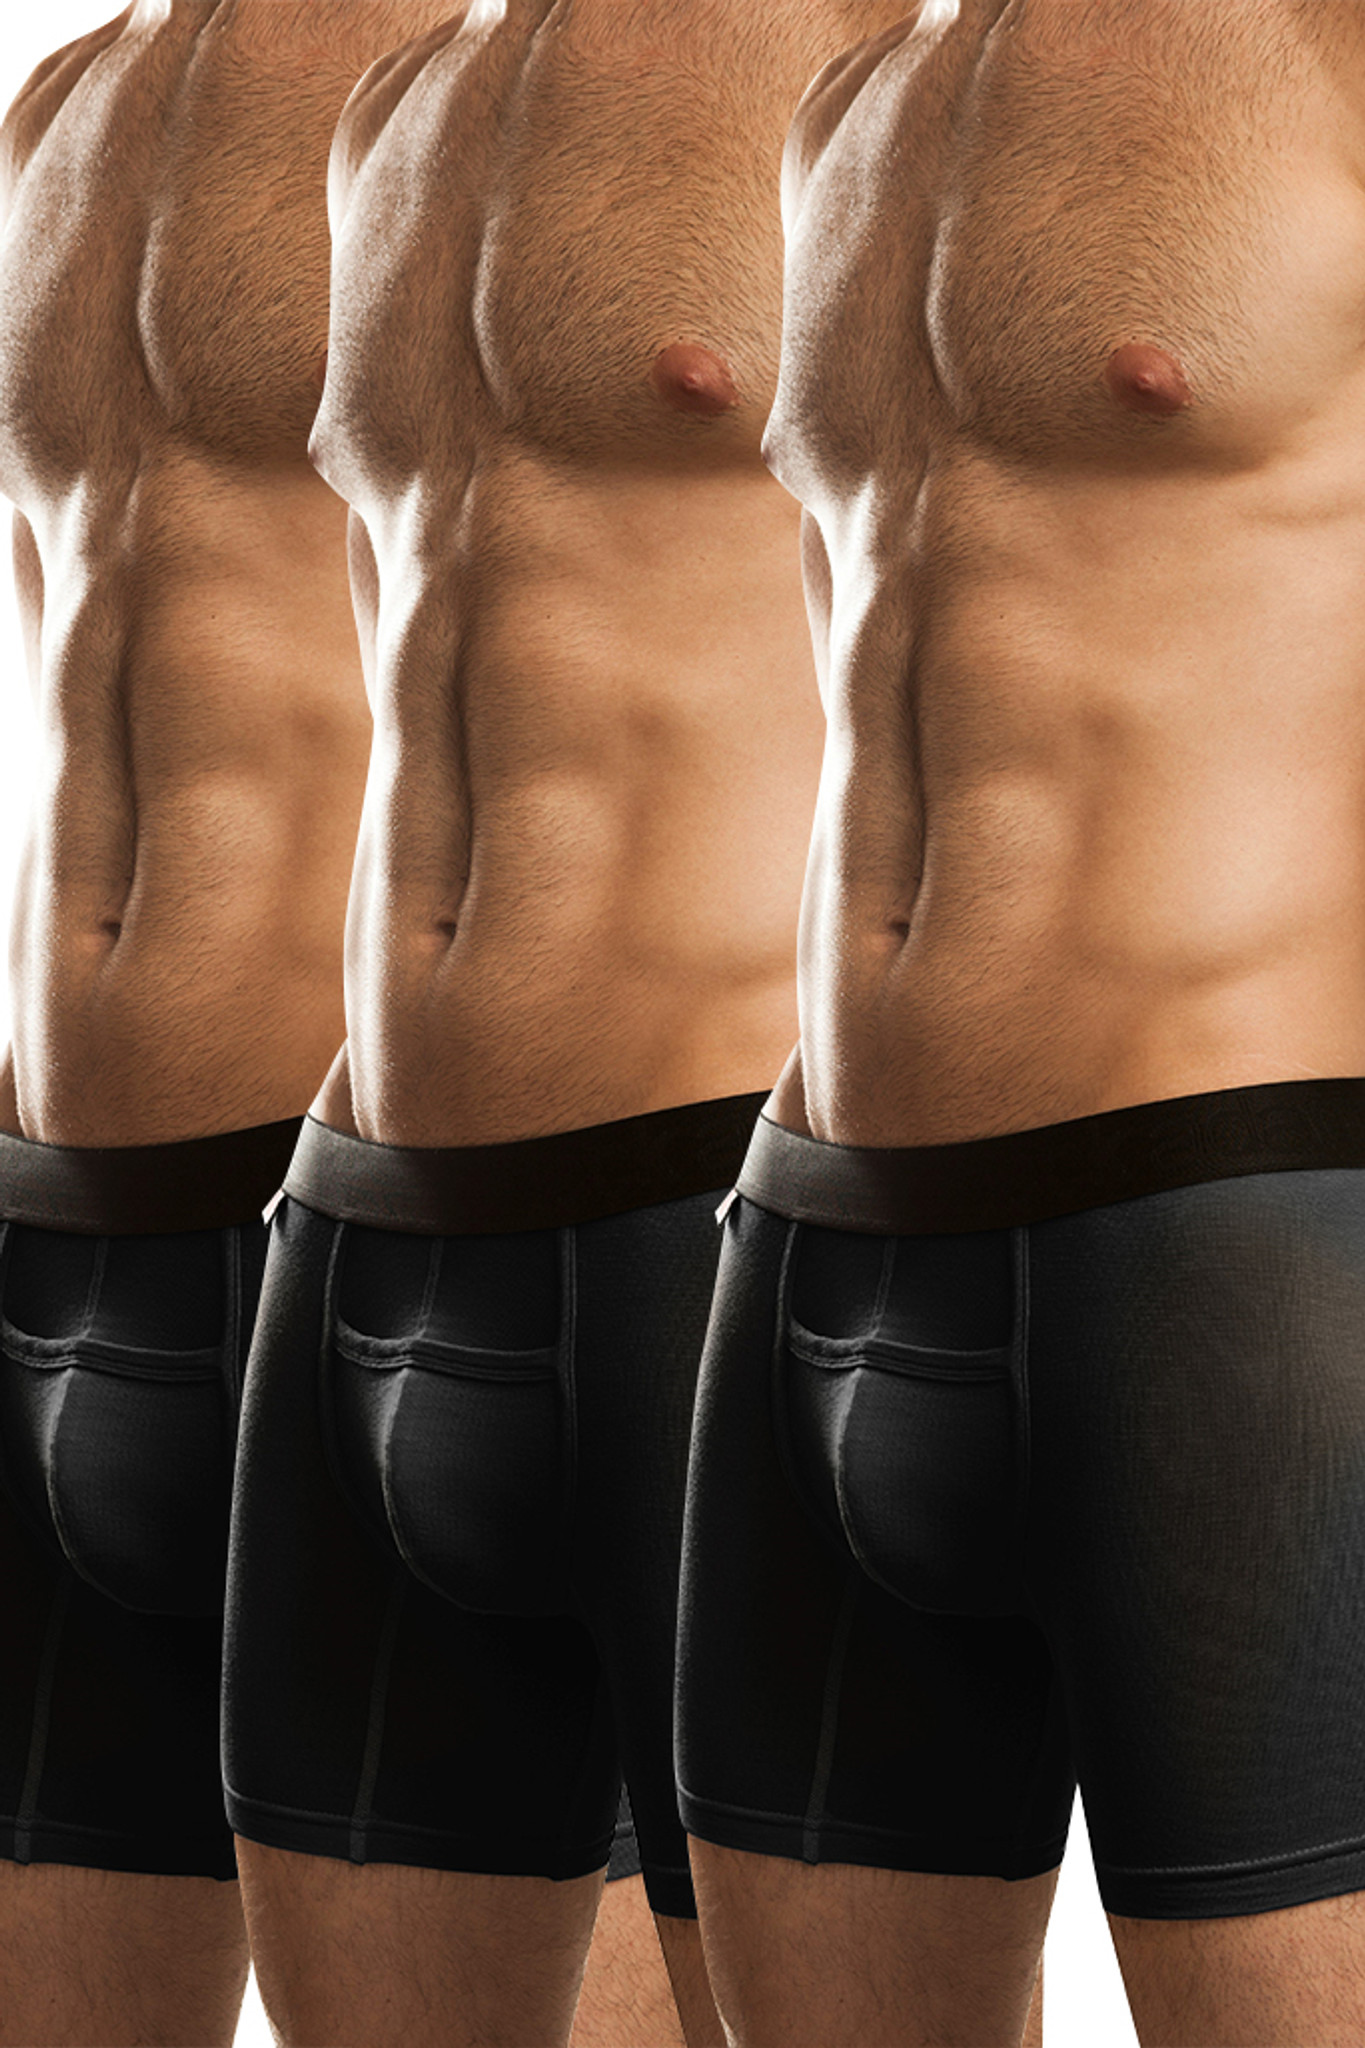 Jack Adams Naked Fit Boxer Brief Multi-Pack: Black (3)